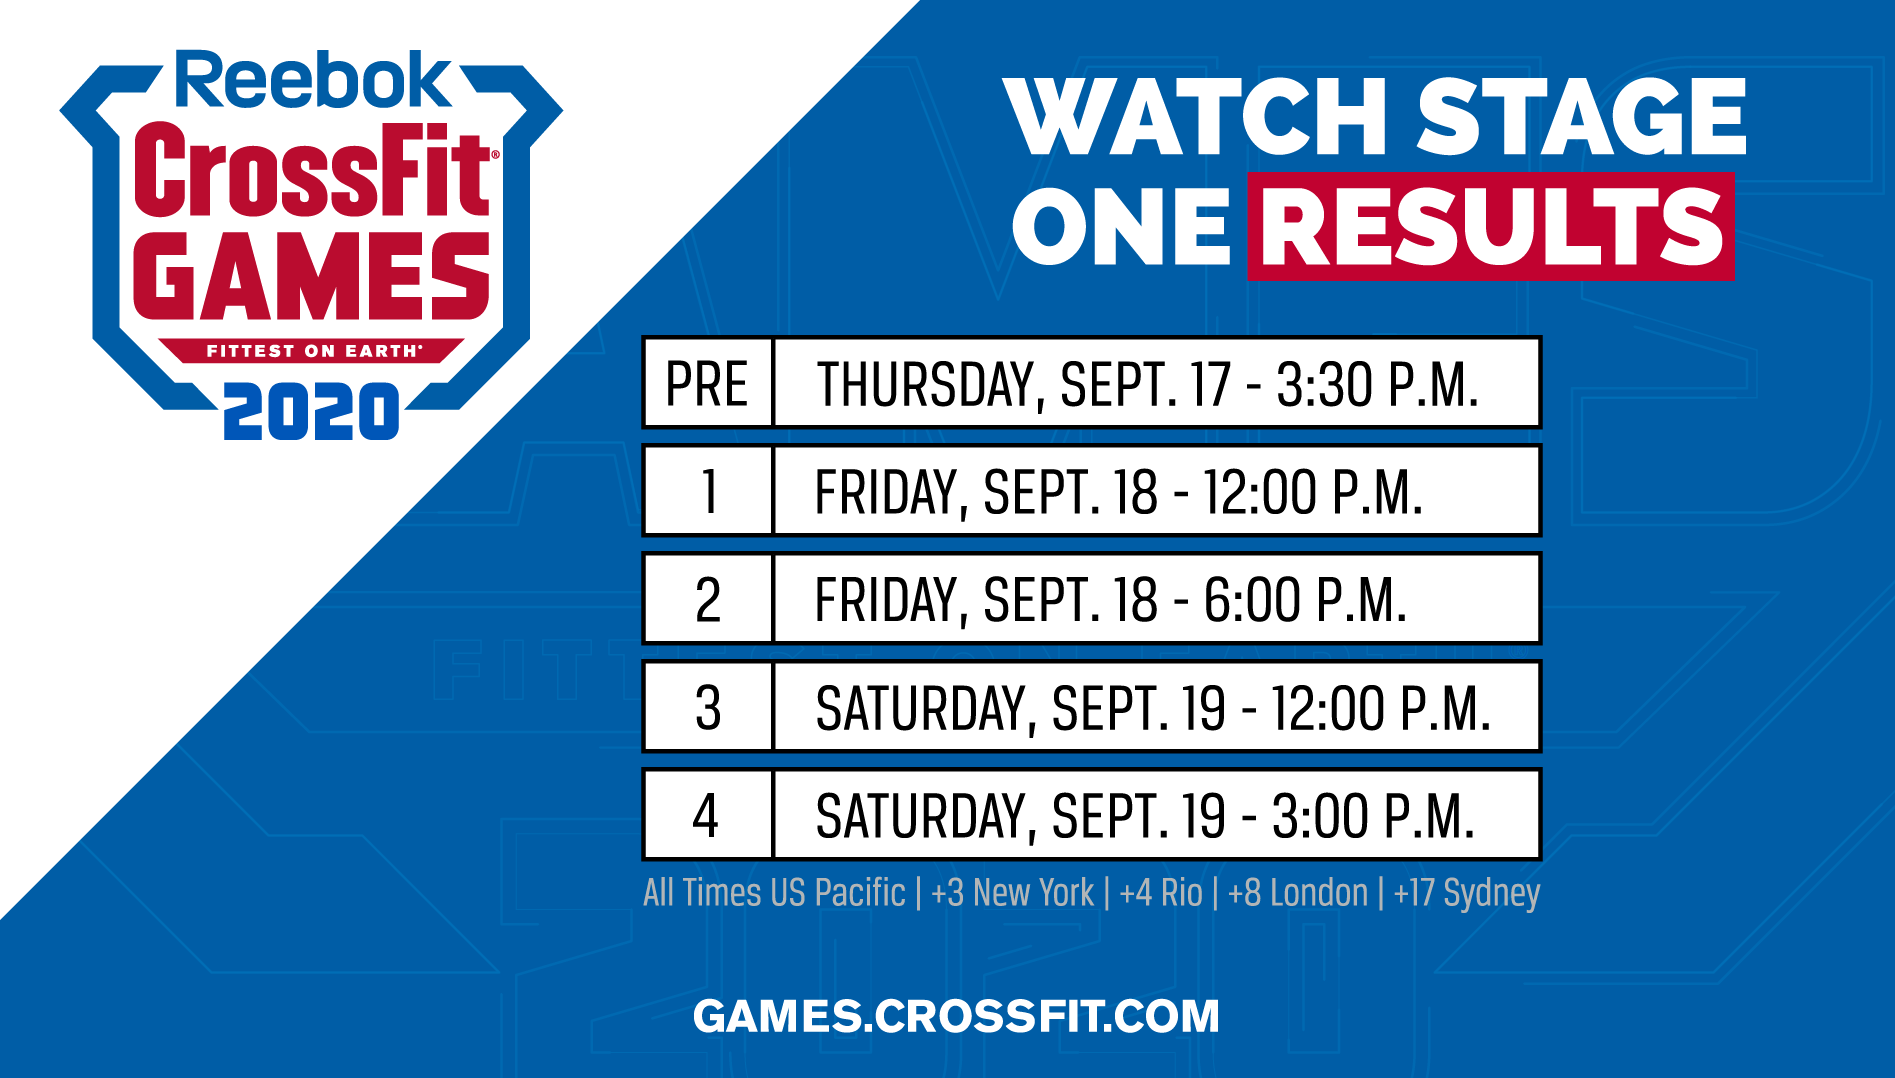 How to Watch Stage 1 of the 2020 Reebok CrossFit Games